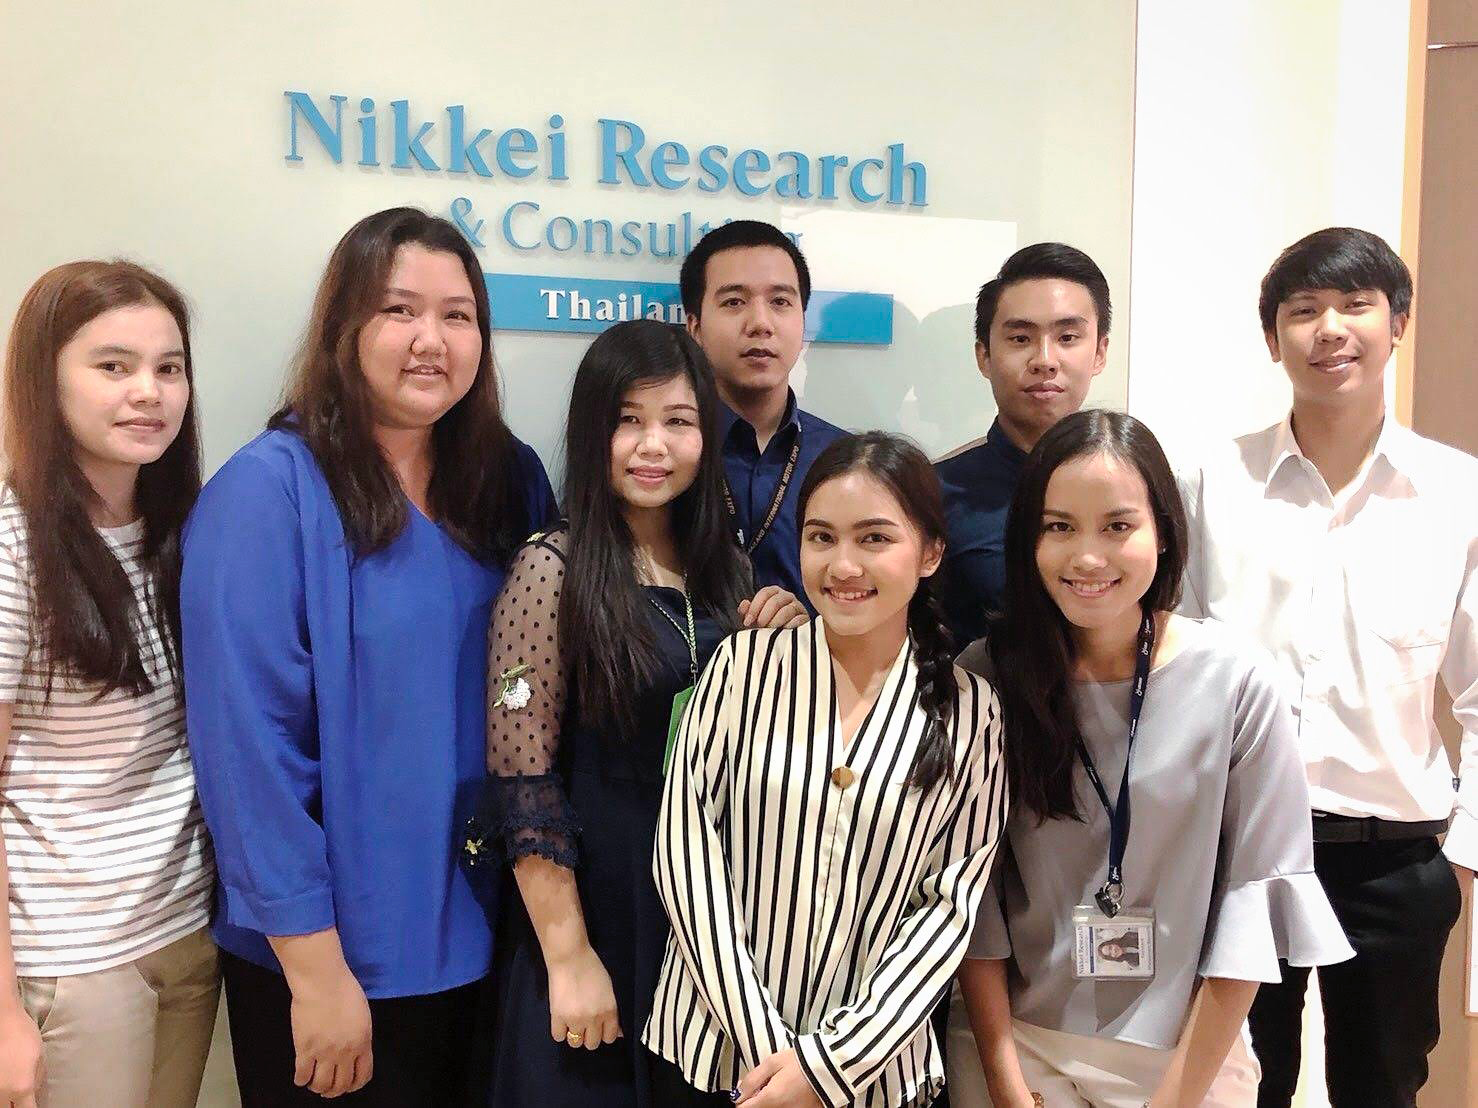 Nikkei Research & Consulting (Thailand)